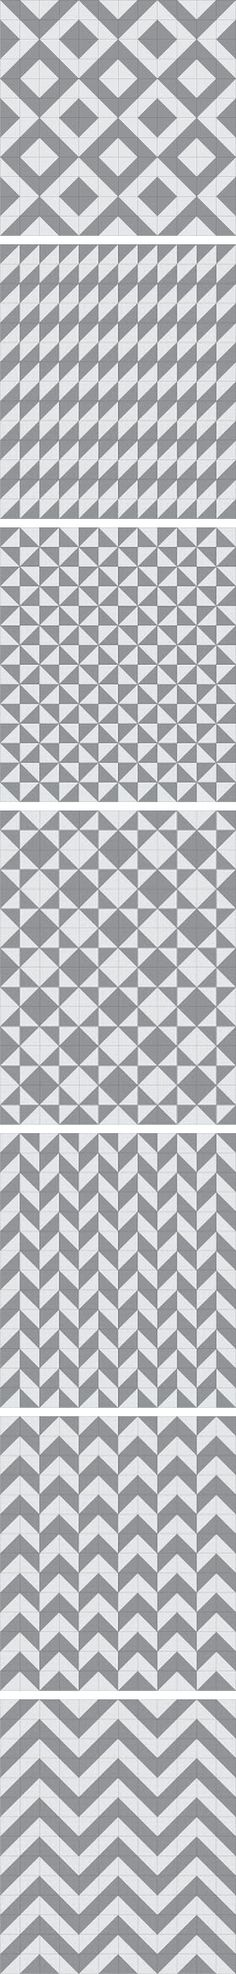 Seven more half-square triangle layout patterns..